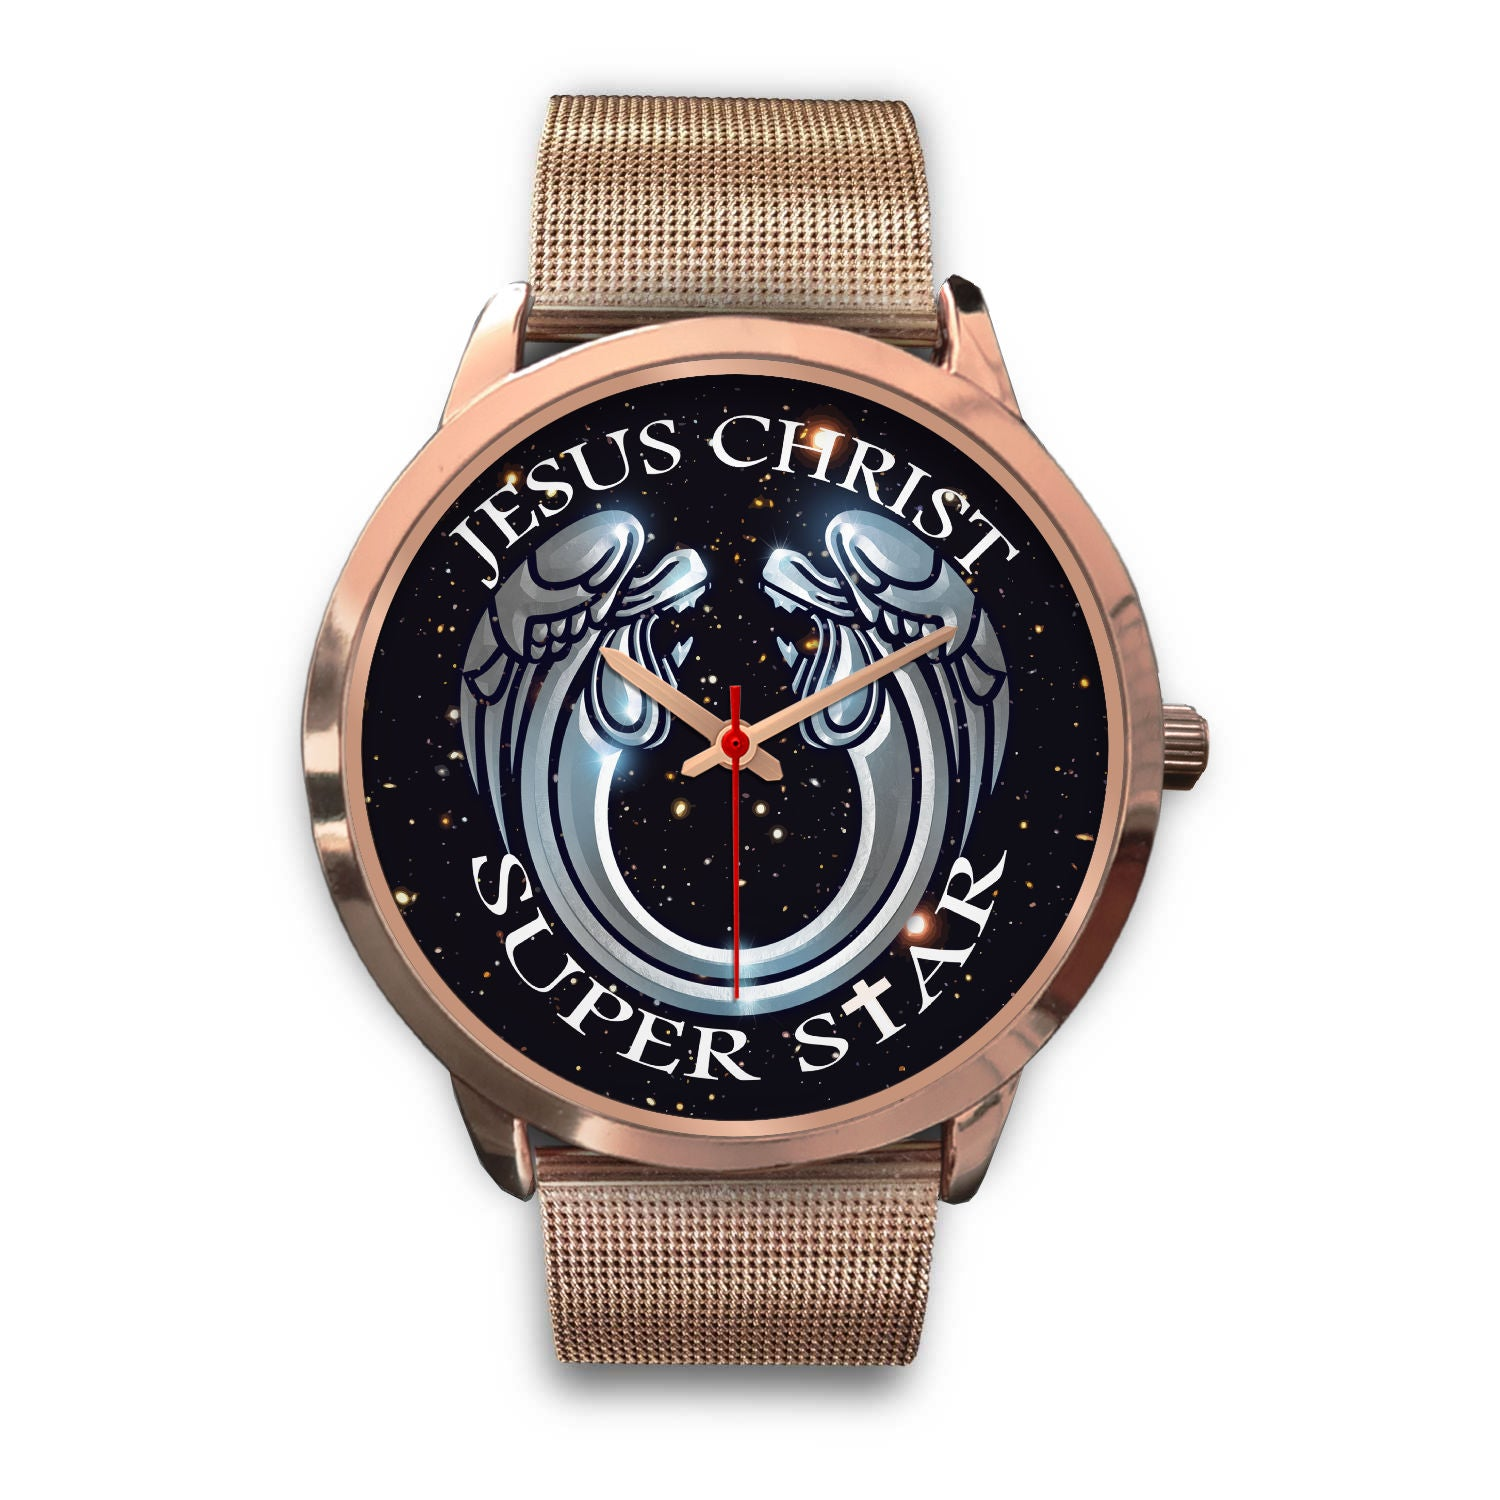 VIRA Awesome Rose Gold Watch For Jesus Christ-Superstar Lovers